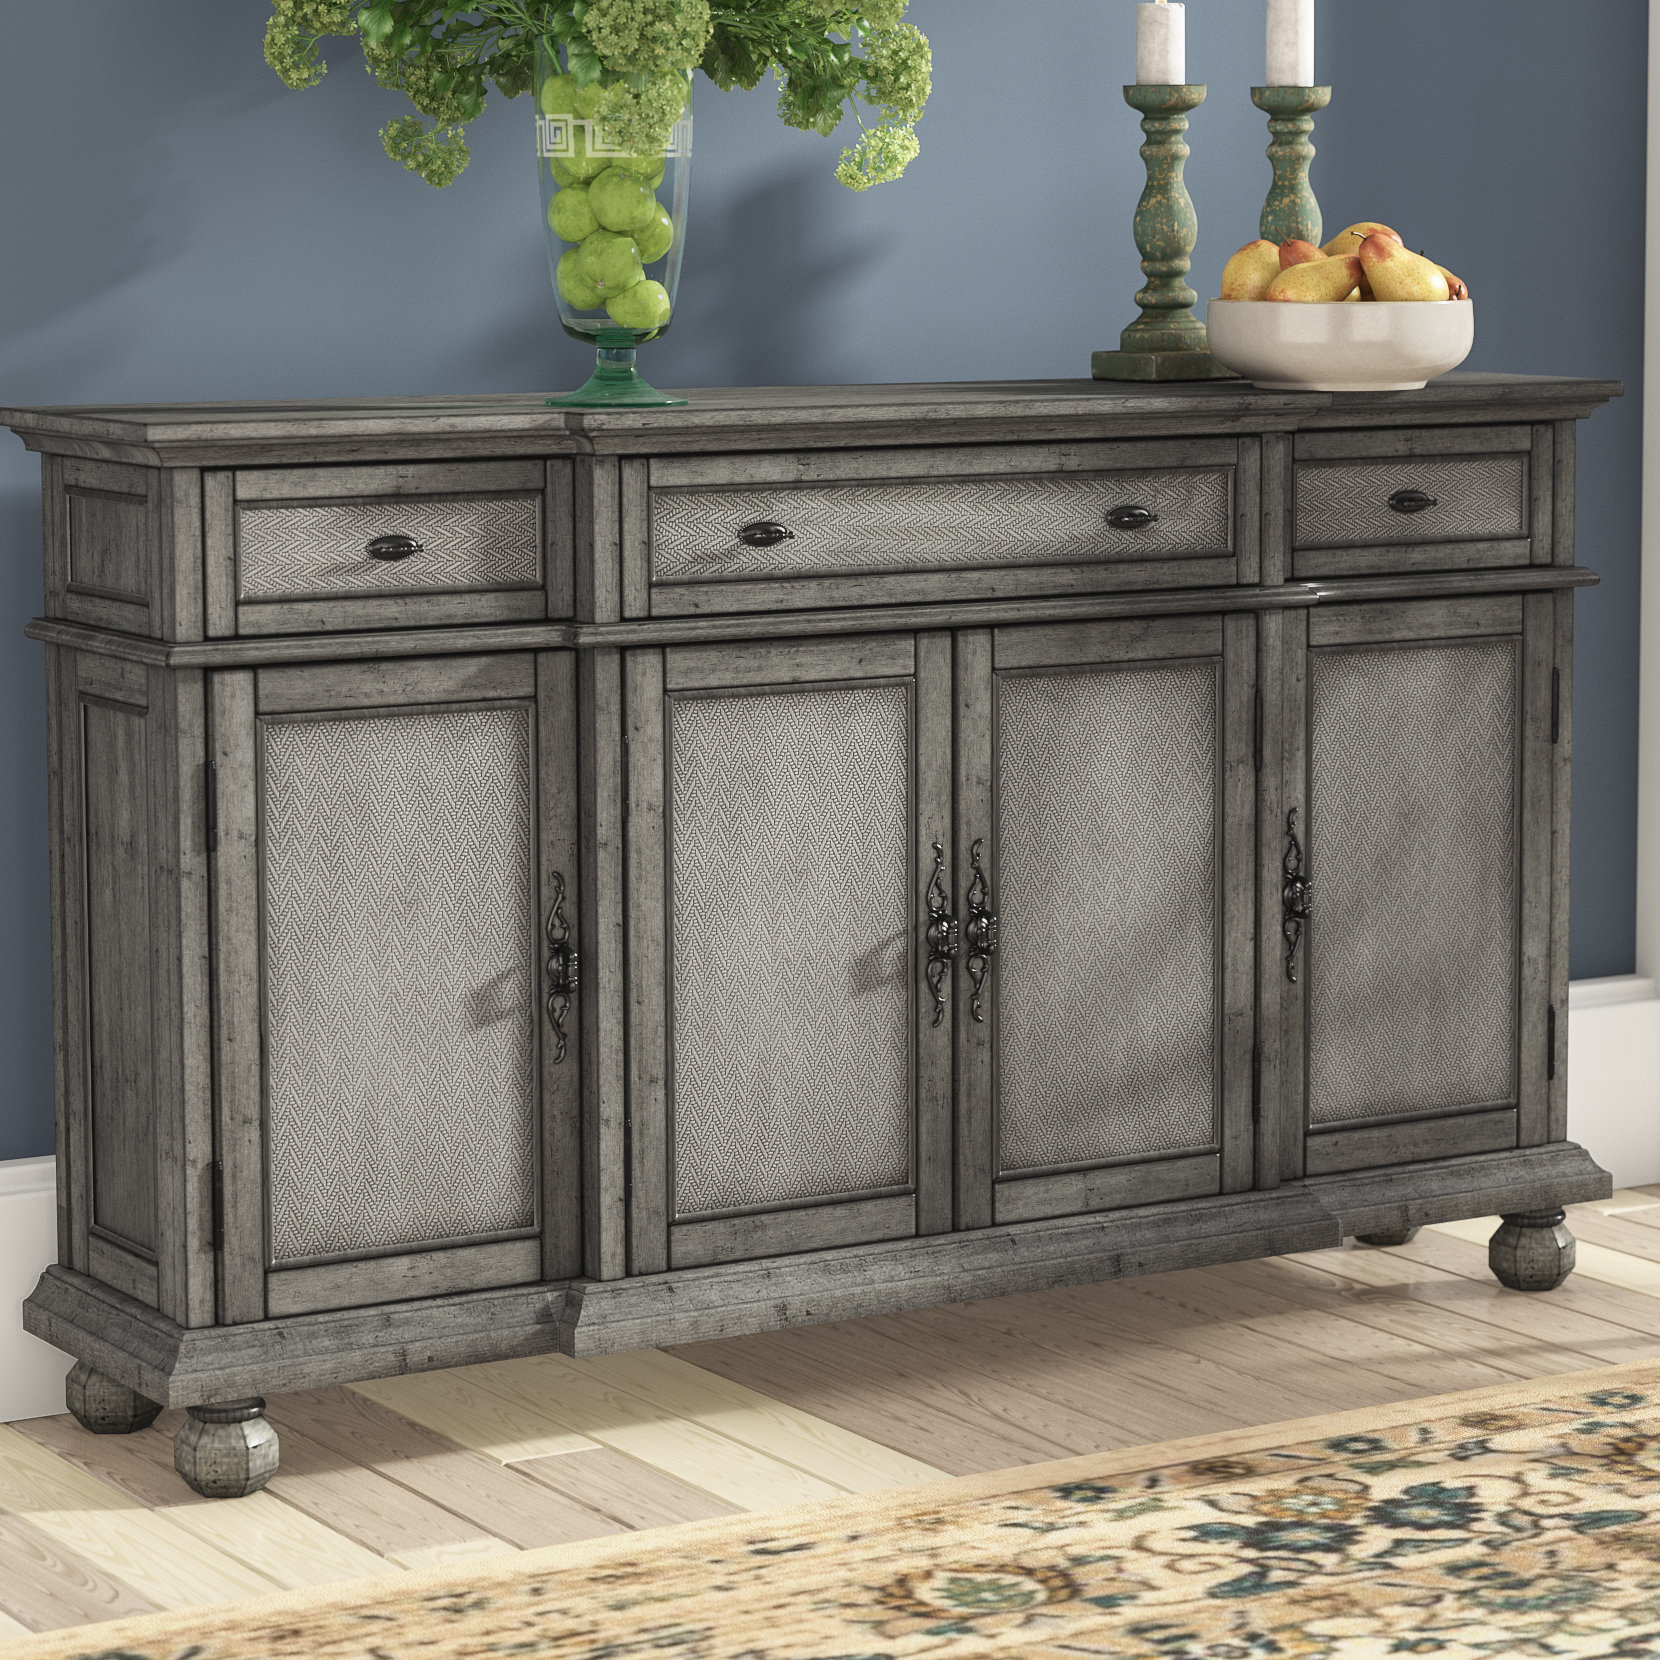 70 Inch Credenza You'll Love In 2019 | Wayfair intended for Abhinav Credenzas (Image 2 of 30)